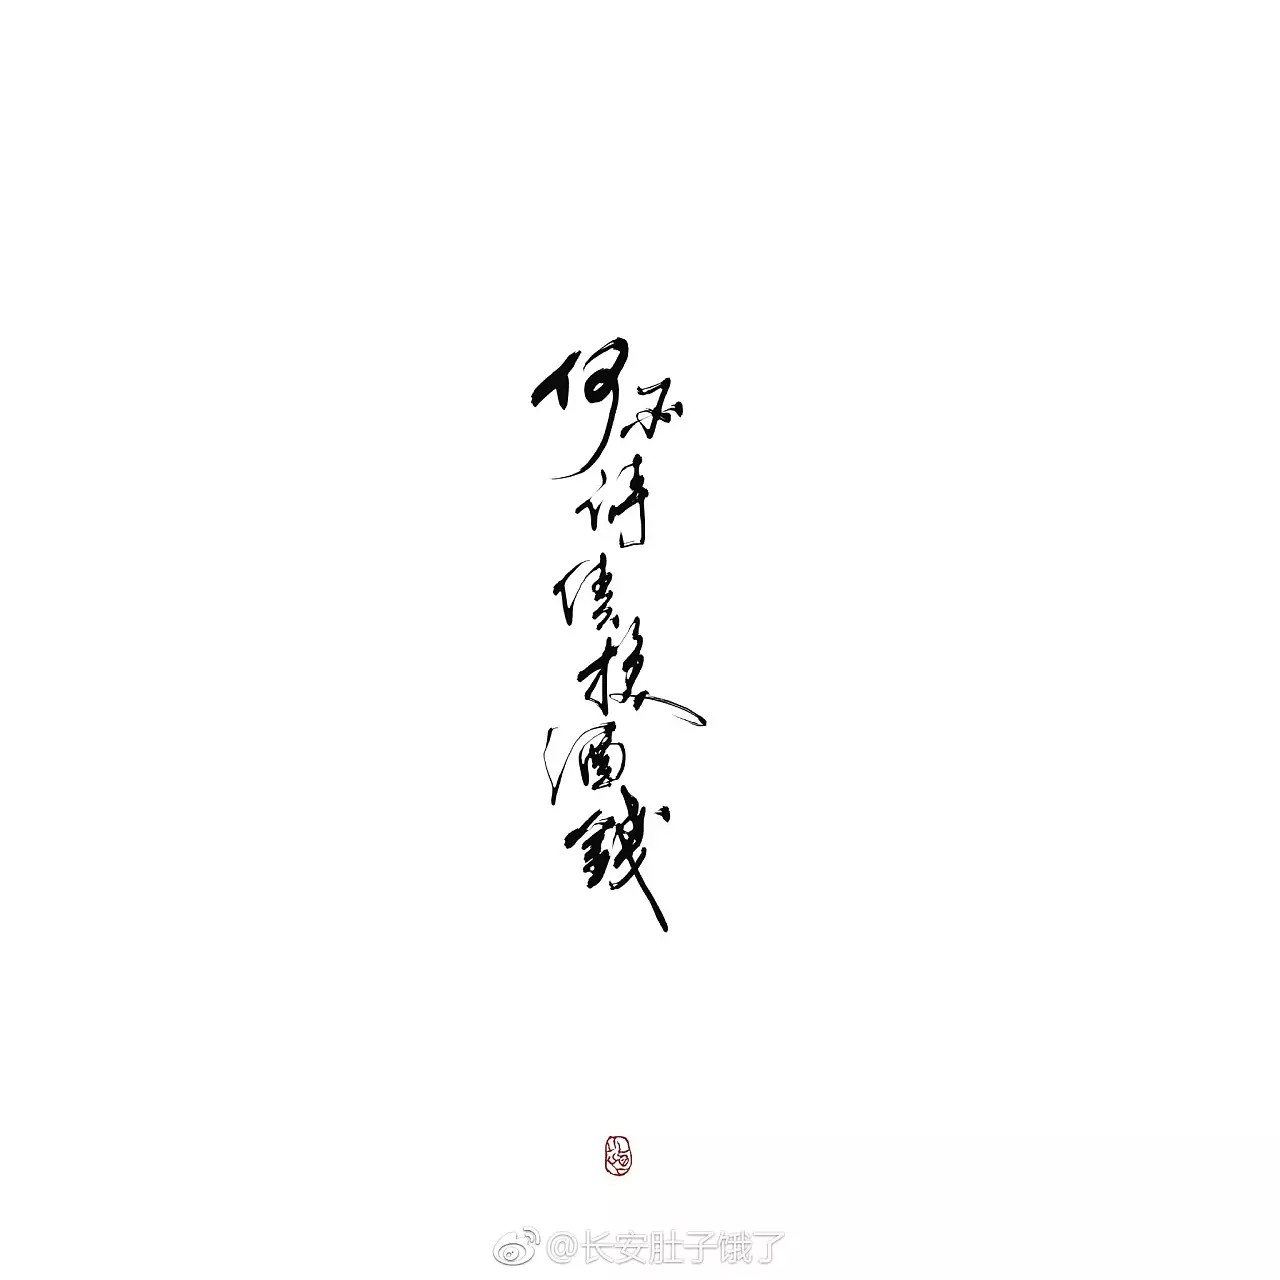 8P Chinese traditional calligraphy brush calligraphy font style appreciation #209